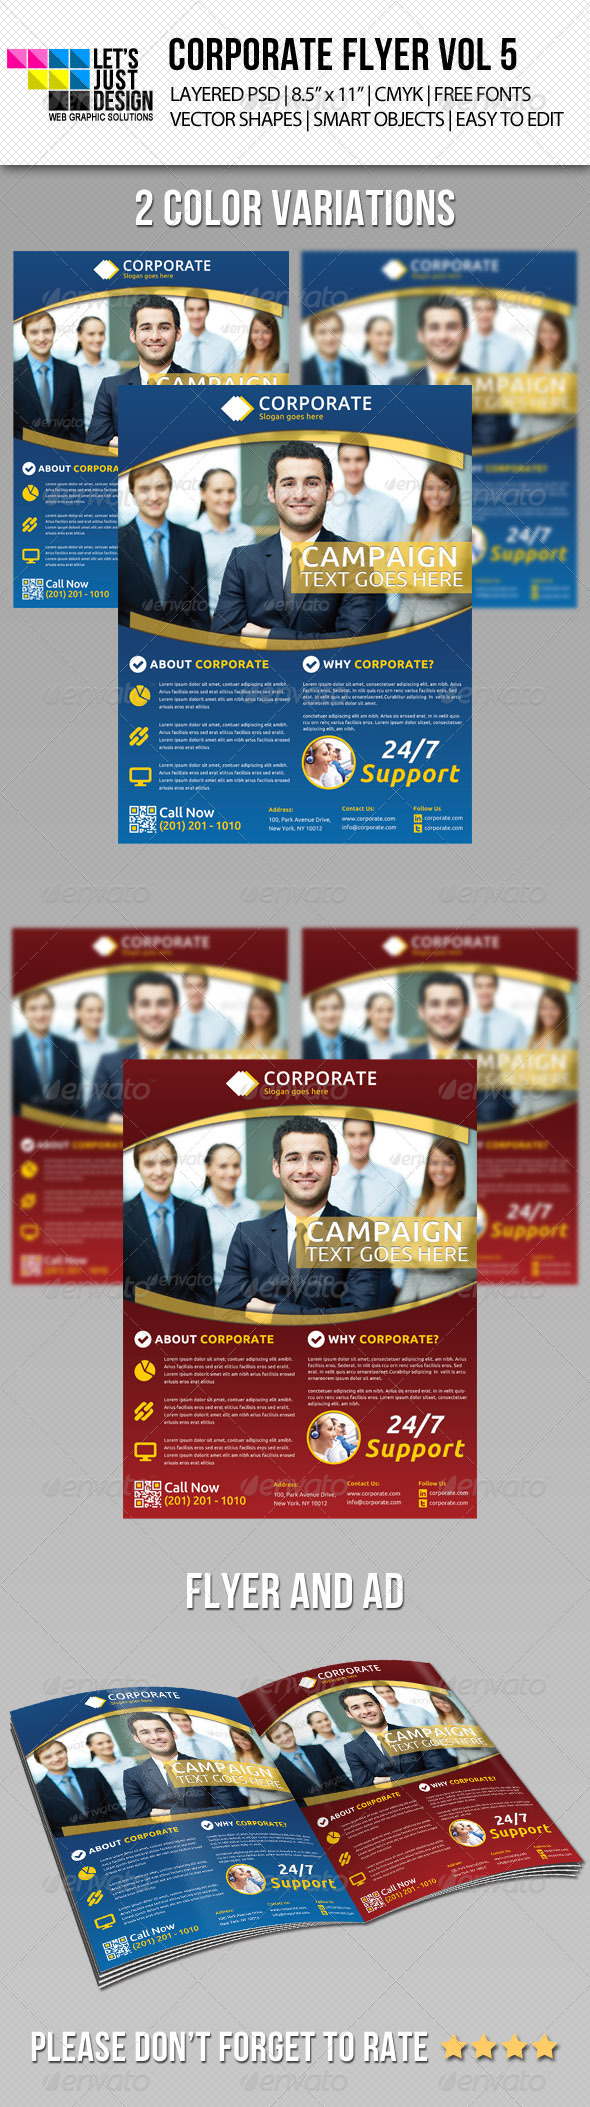 GraphicRiver Corporate Flyer Template Vol 5 5545355